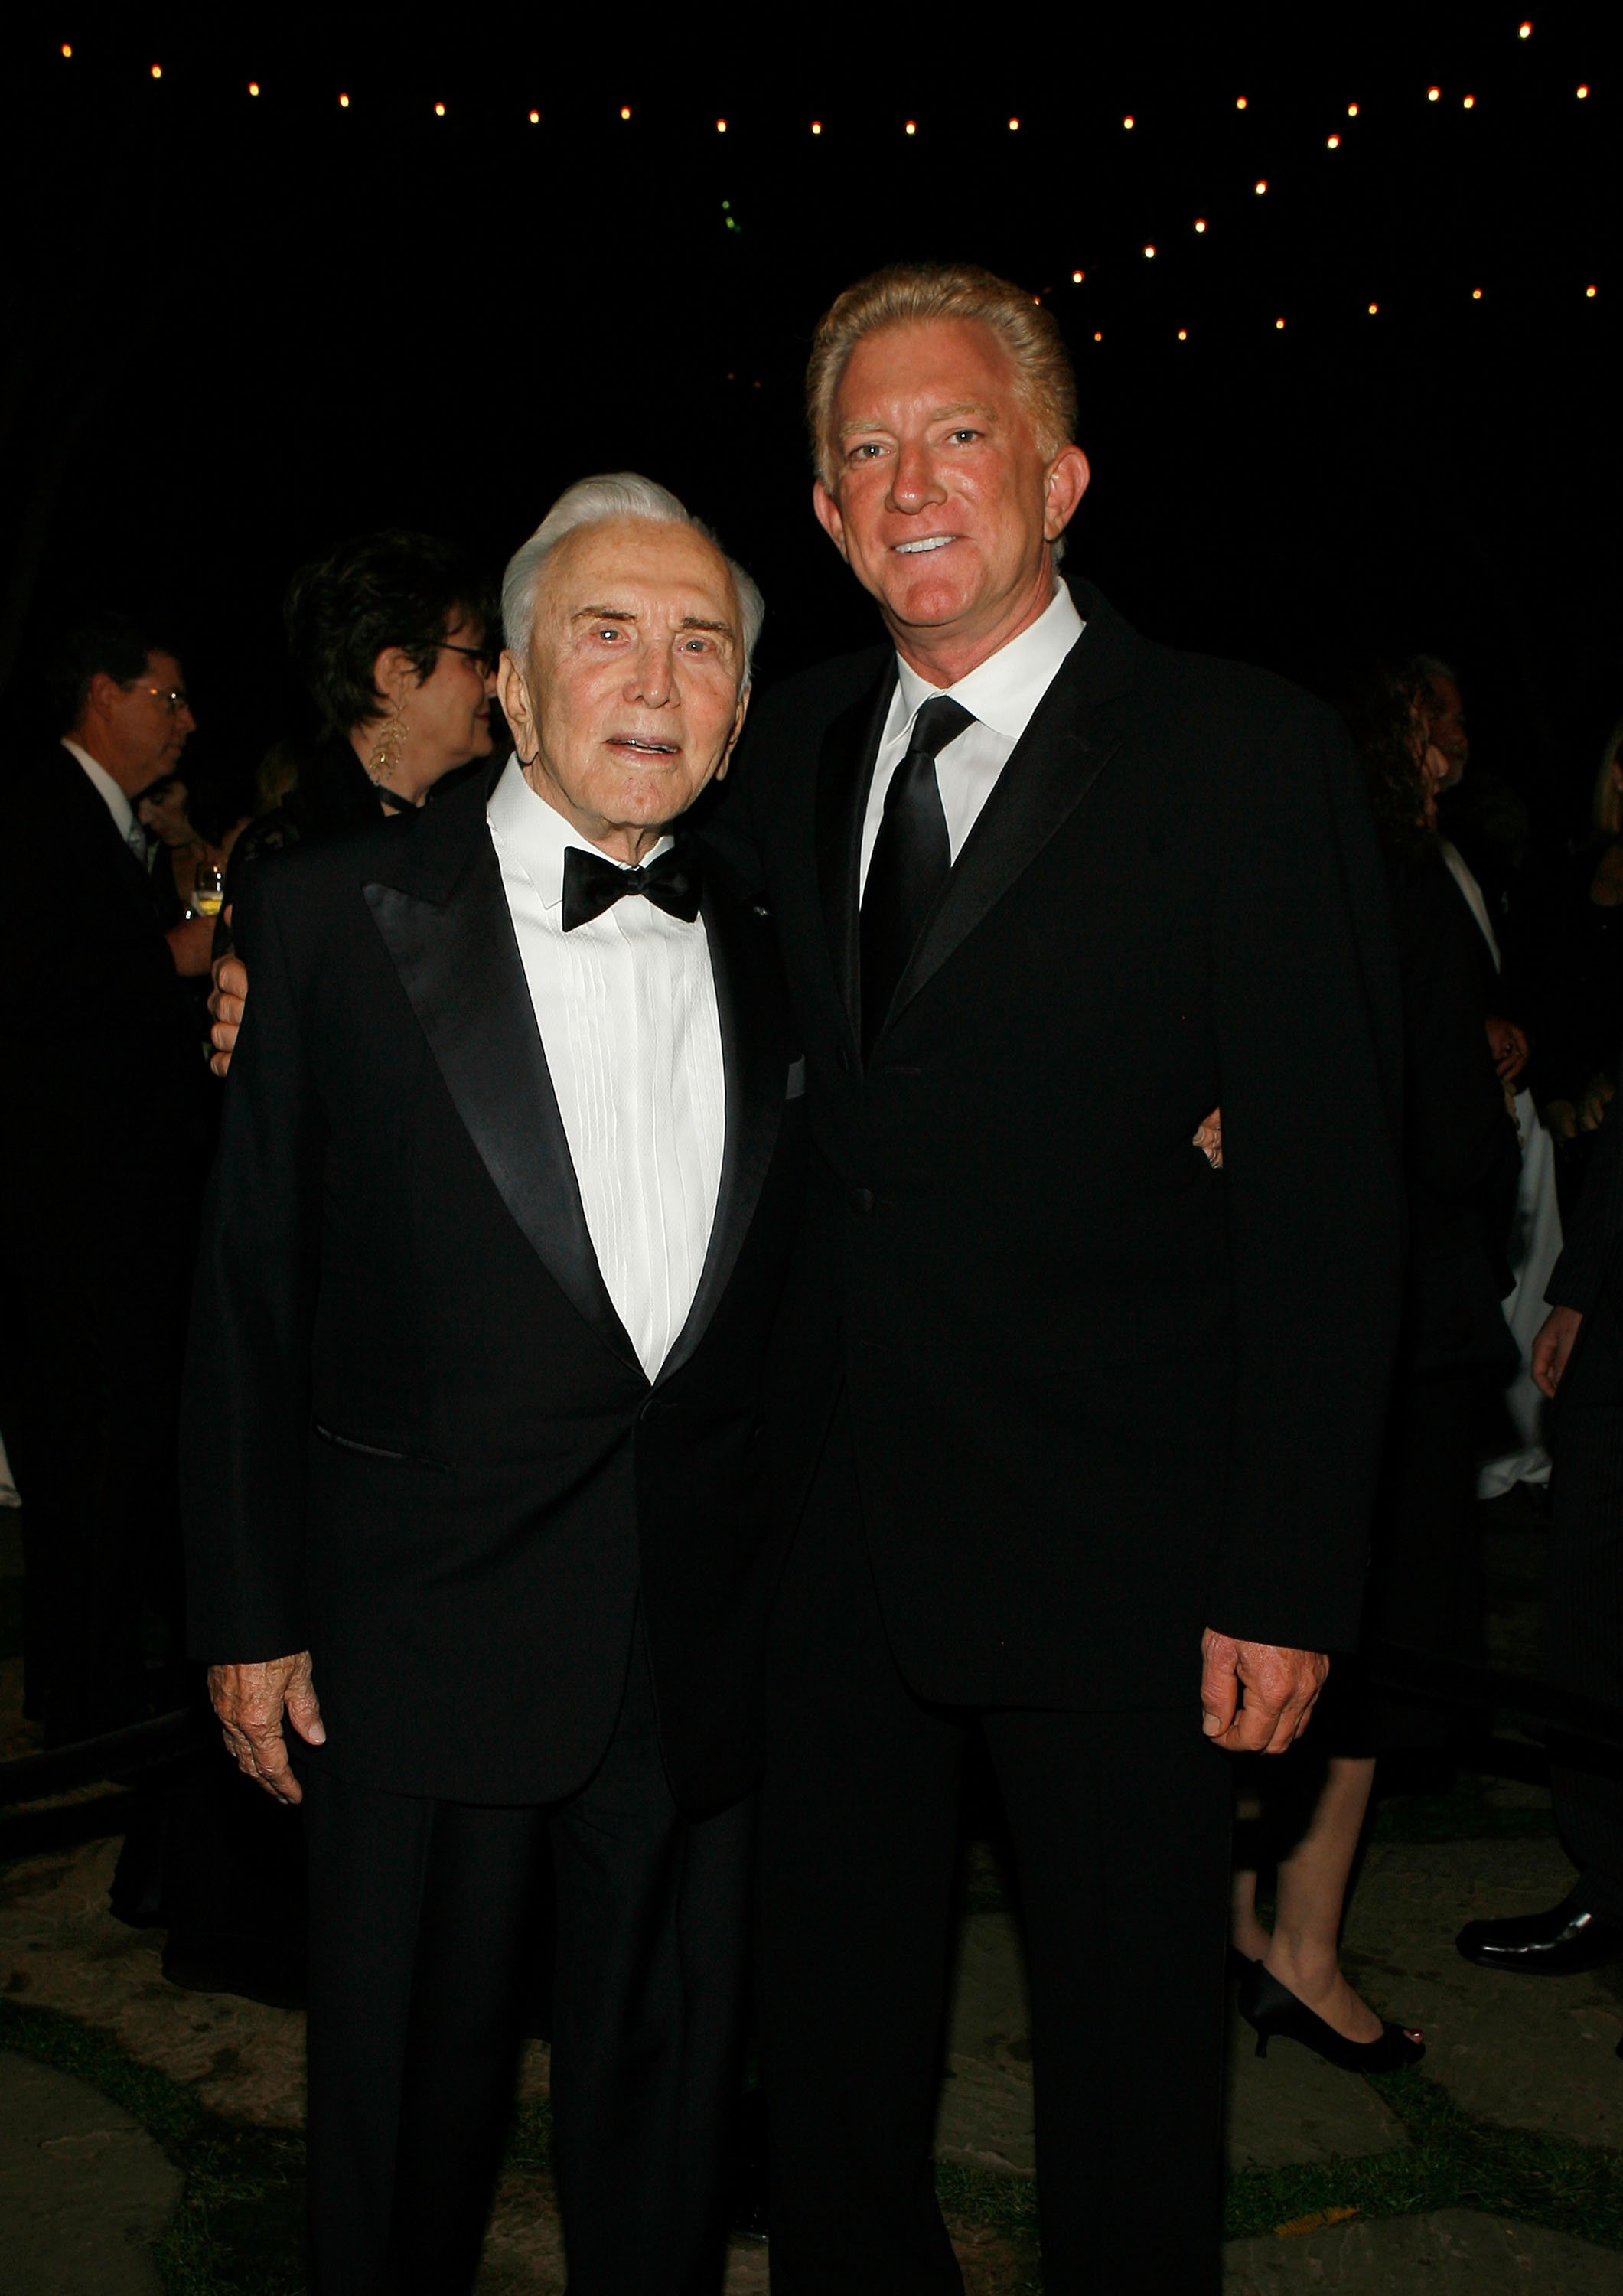 Kirk Douglas and Peter Douglas attend the Santa Barbara International Film Festival honoring John Travolta with the Kirk Douglas award held at the Four Seasons Biltmore hotel on November 15,2007, in Santa Barbara California. | Source: Getty Images.